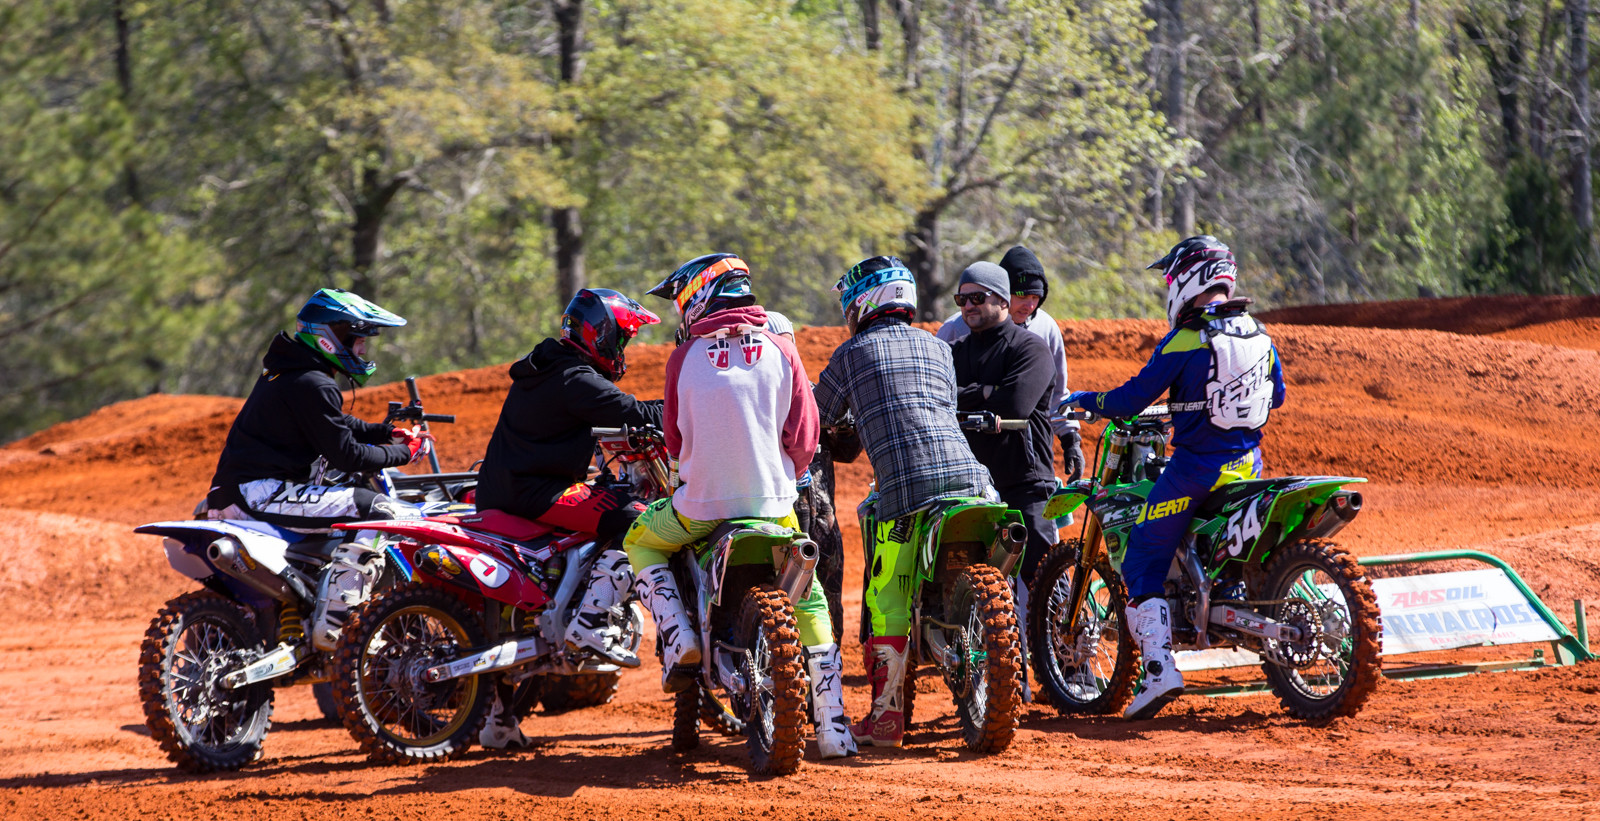 Goat Farm Crew - Photo Gallery: The Nest, Goat Farm, and MTF - Motocross Pictures - Vital MX